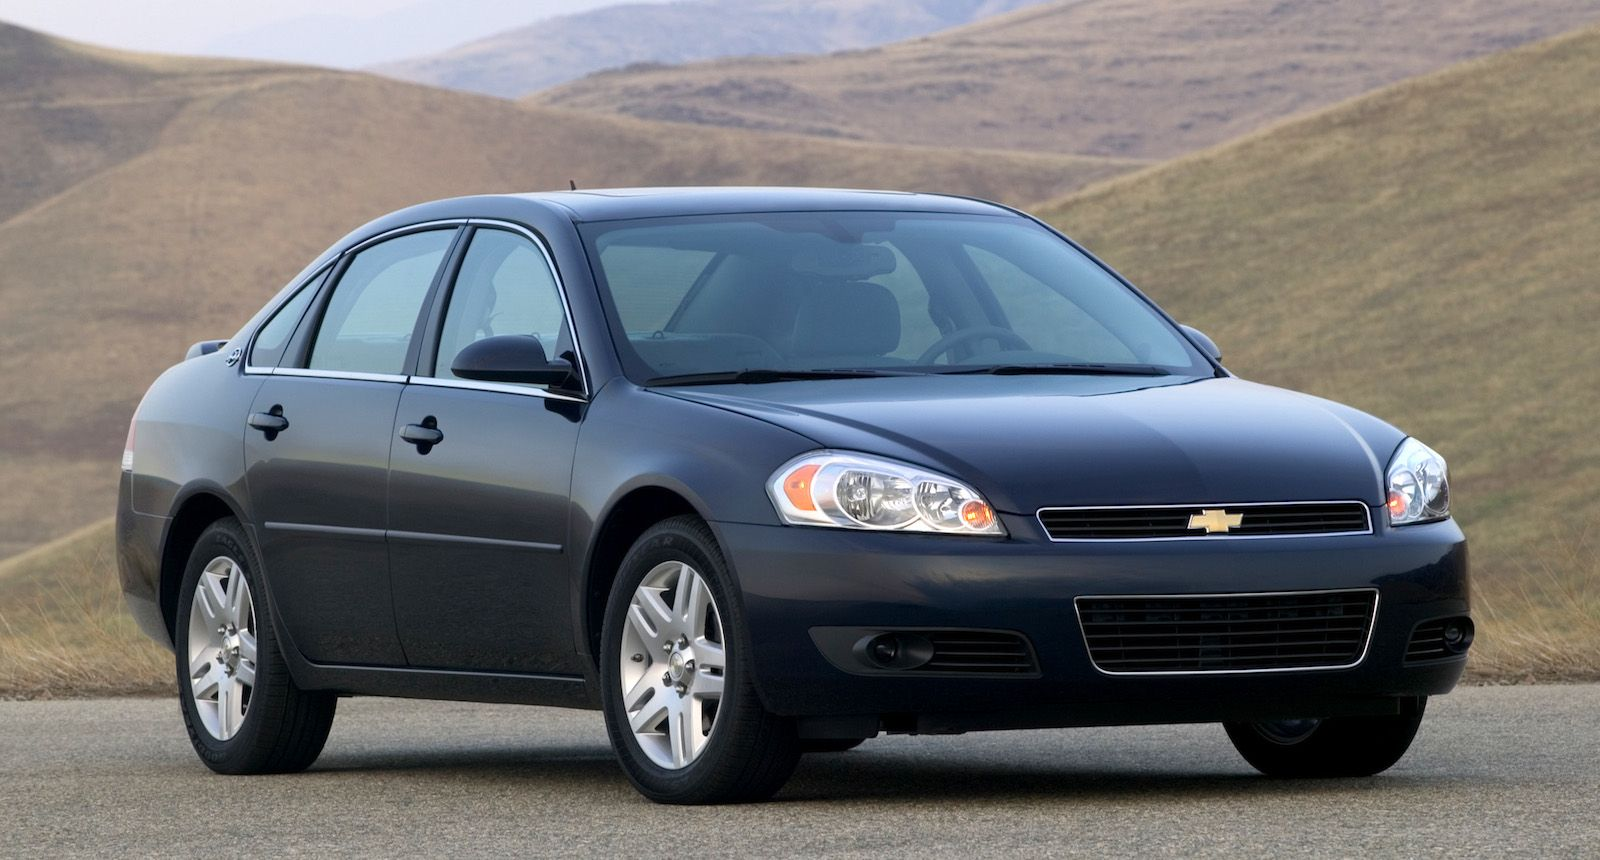 Staggering Gm North America Recall List Now Tops 20 Million Vehicles 2006 Chevrolet Impala Chevrolet Impala Chevrolet